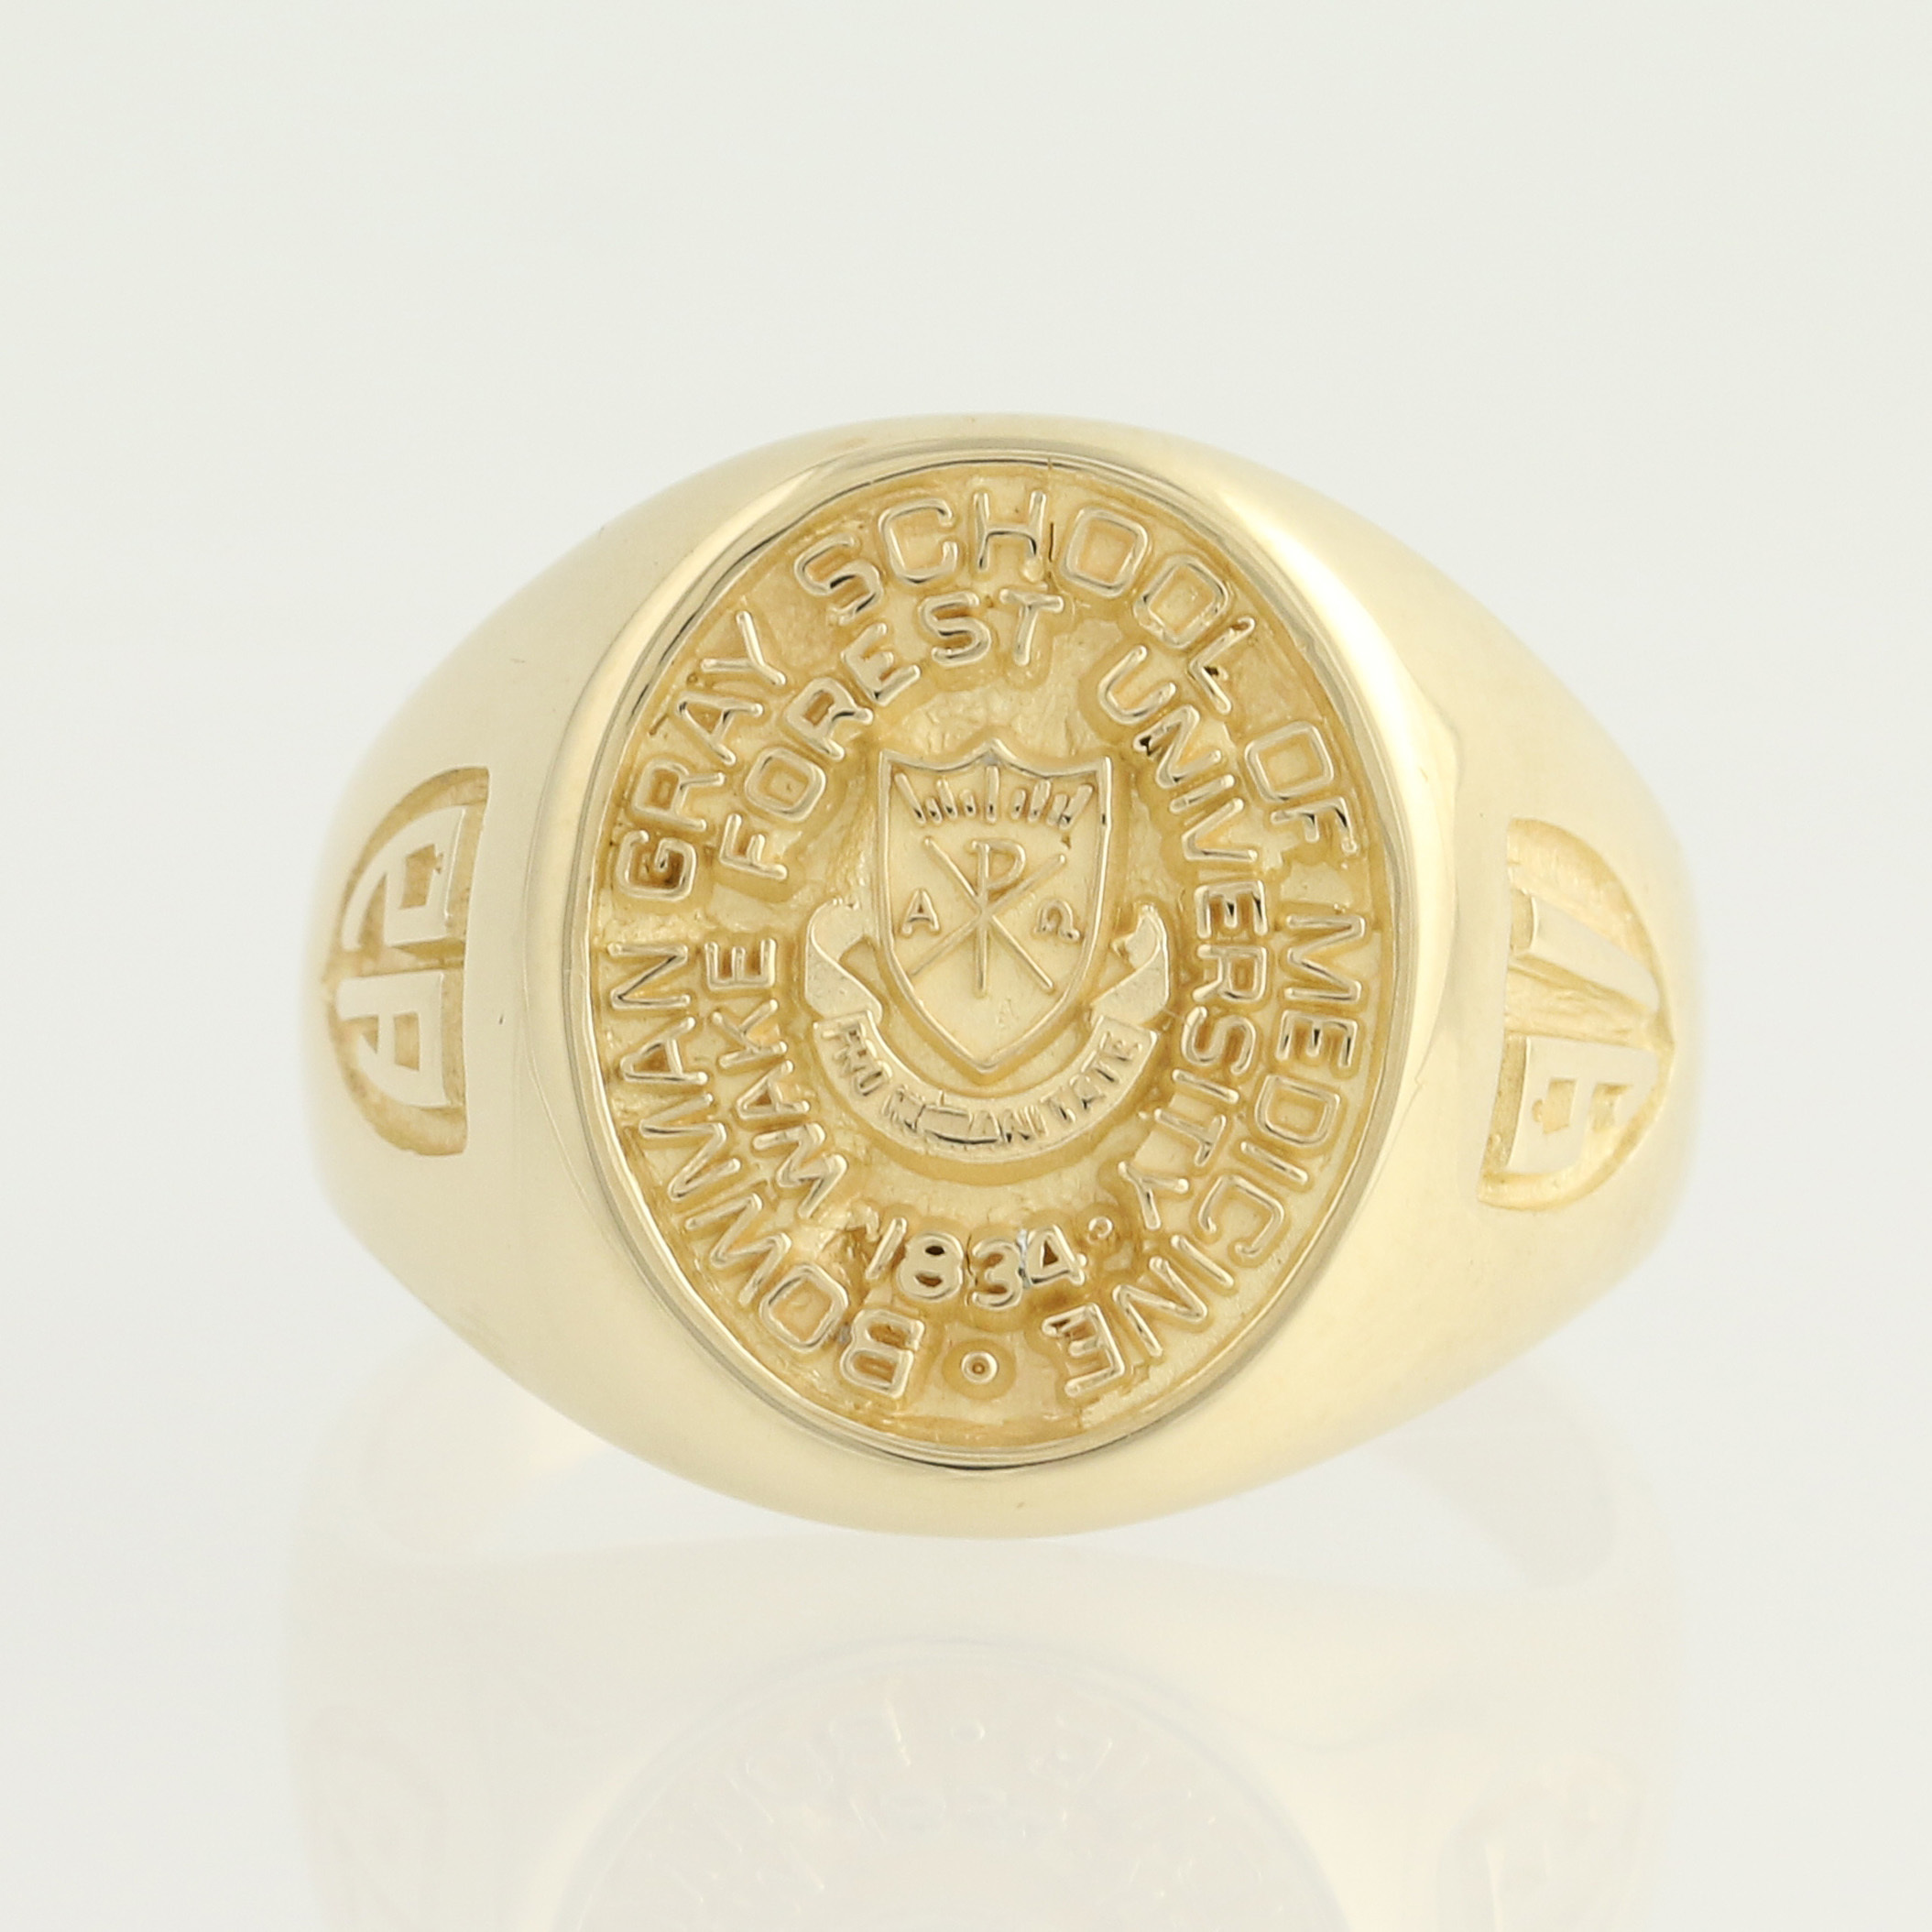 bowman gray school of medicine class ring 14k yellow gold